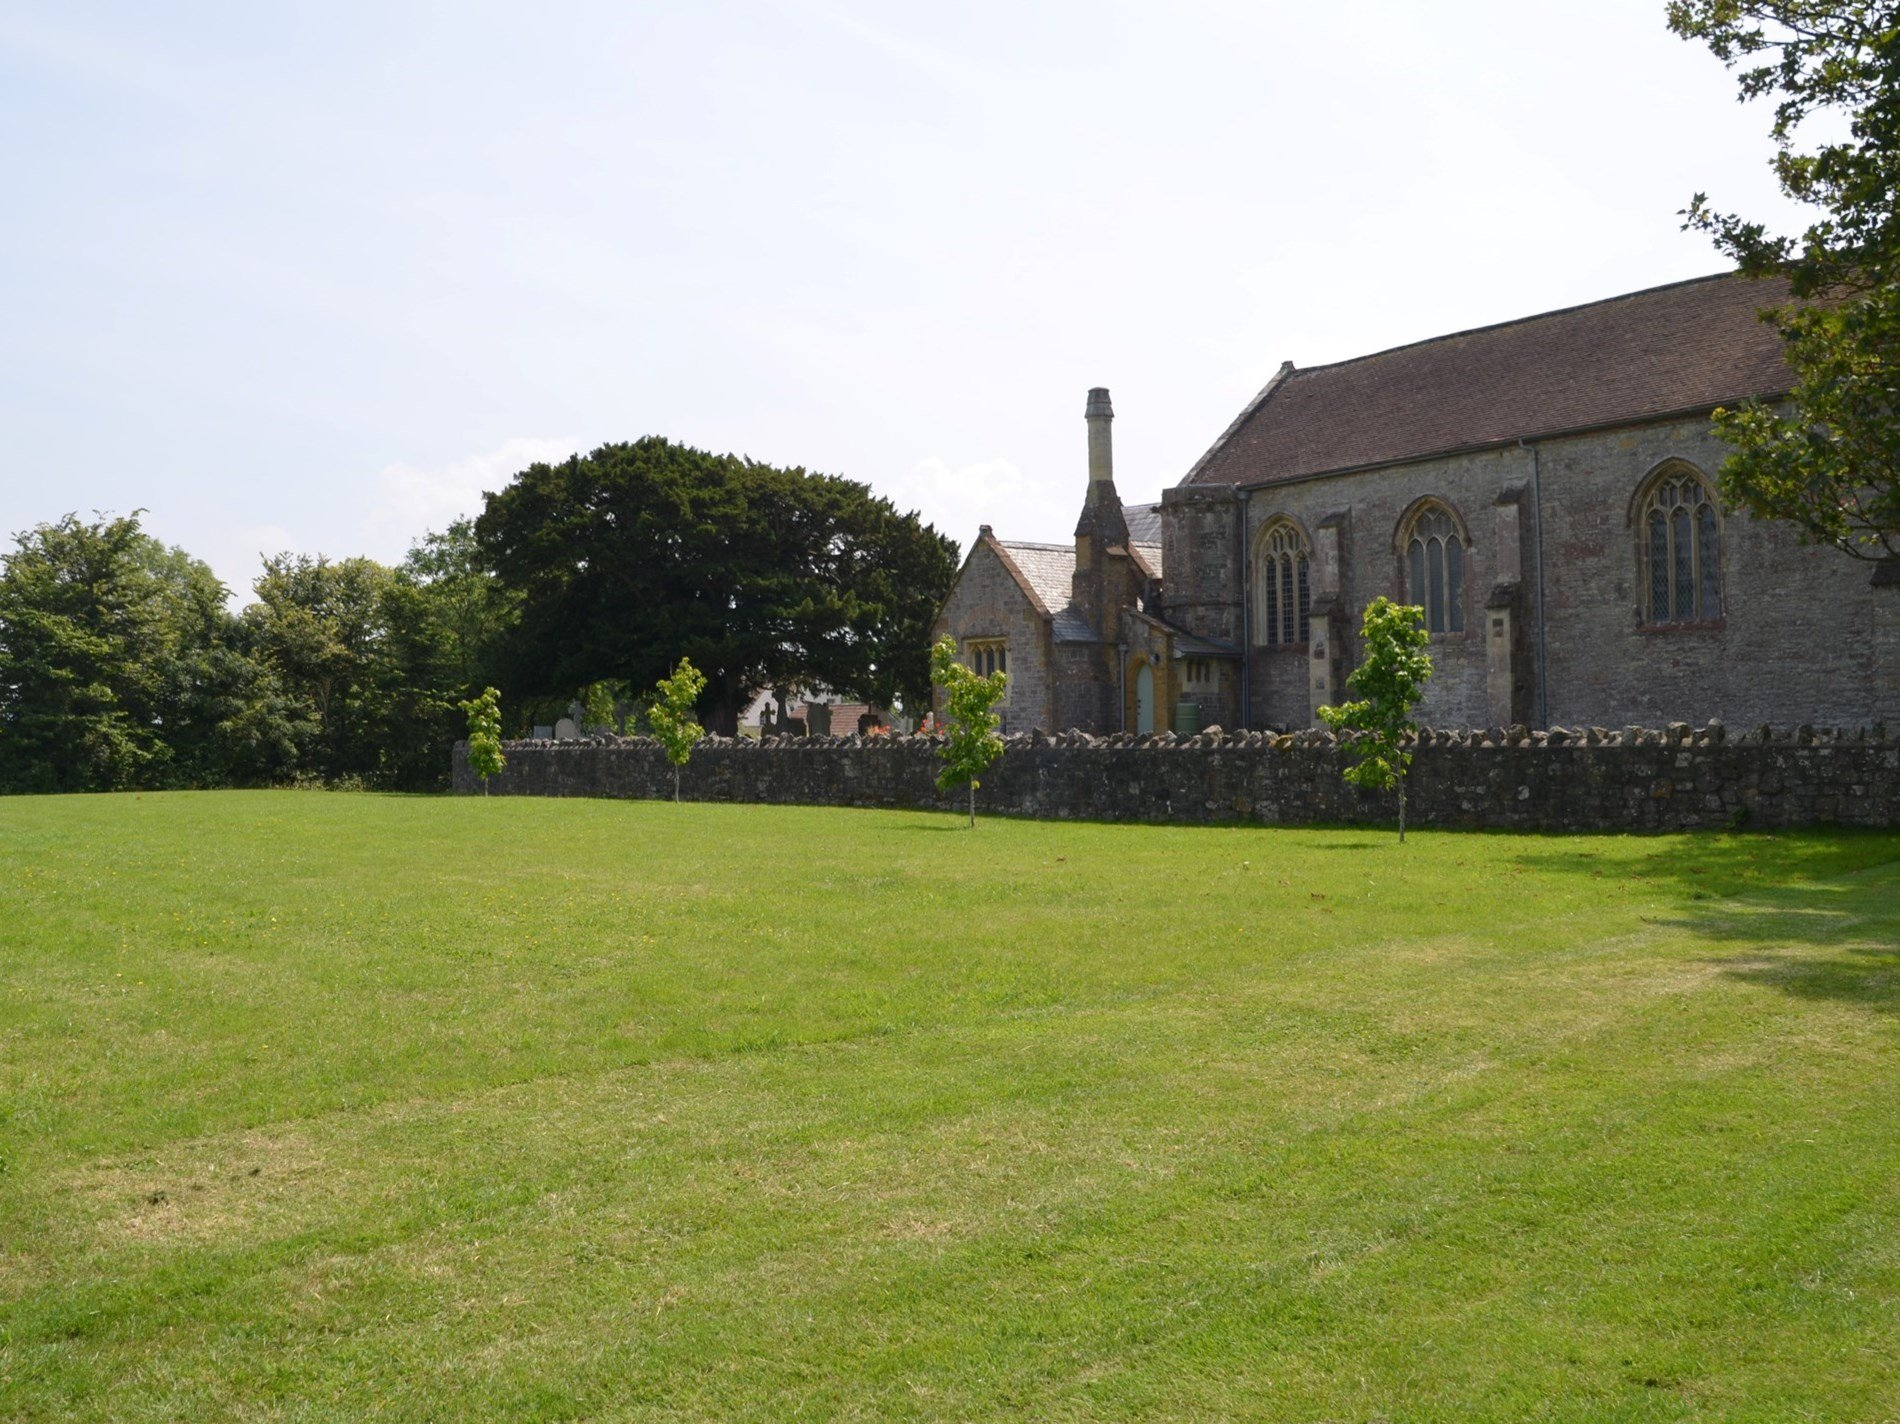 The paddock looks towards the village church